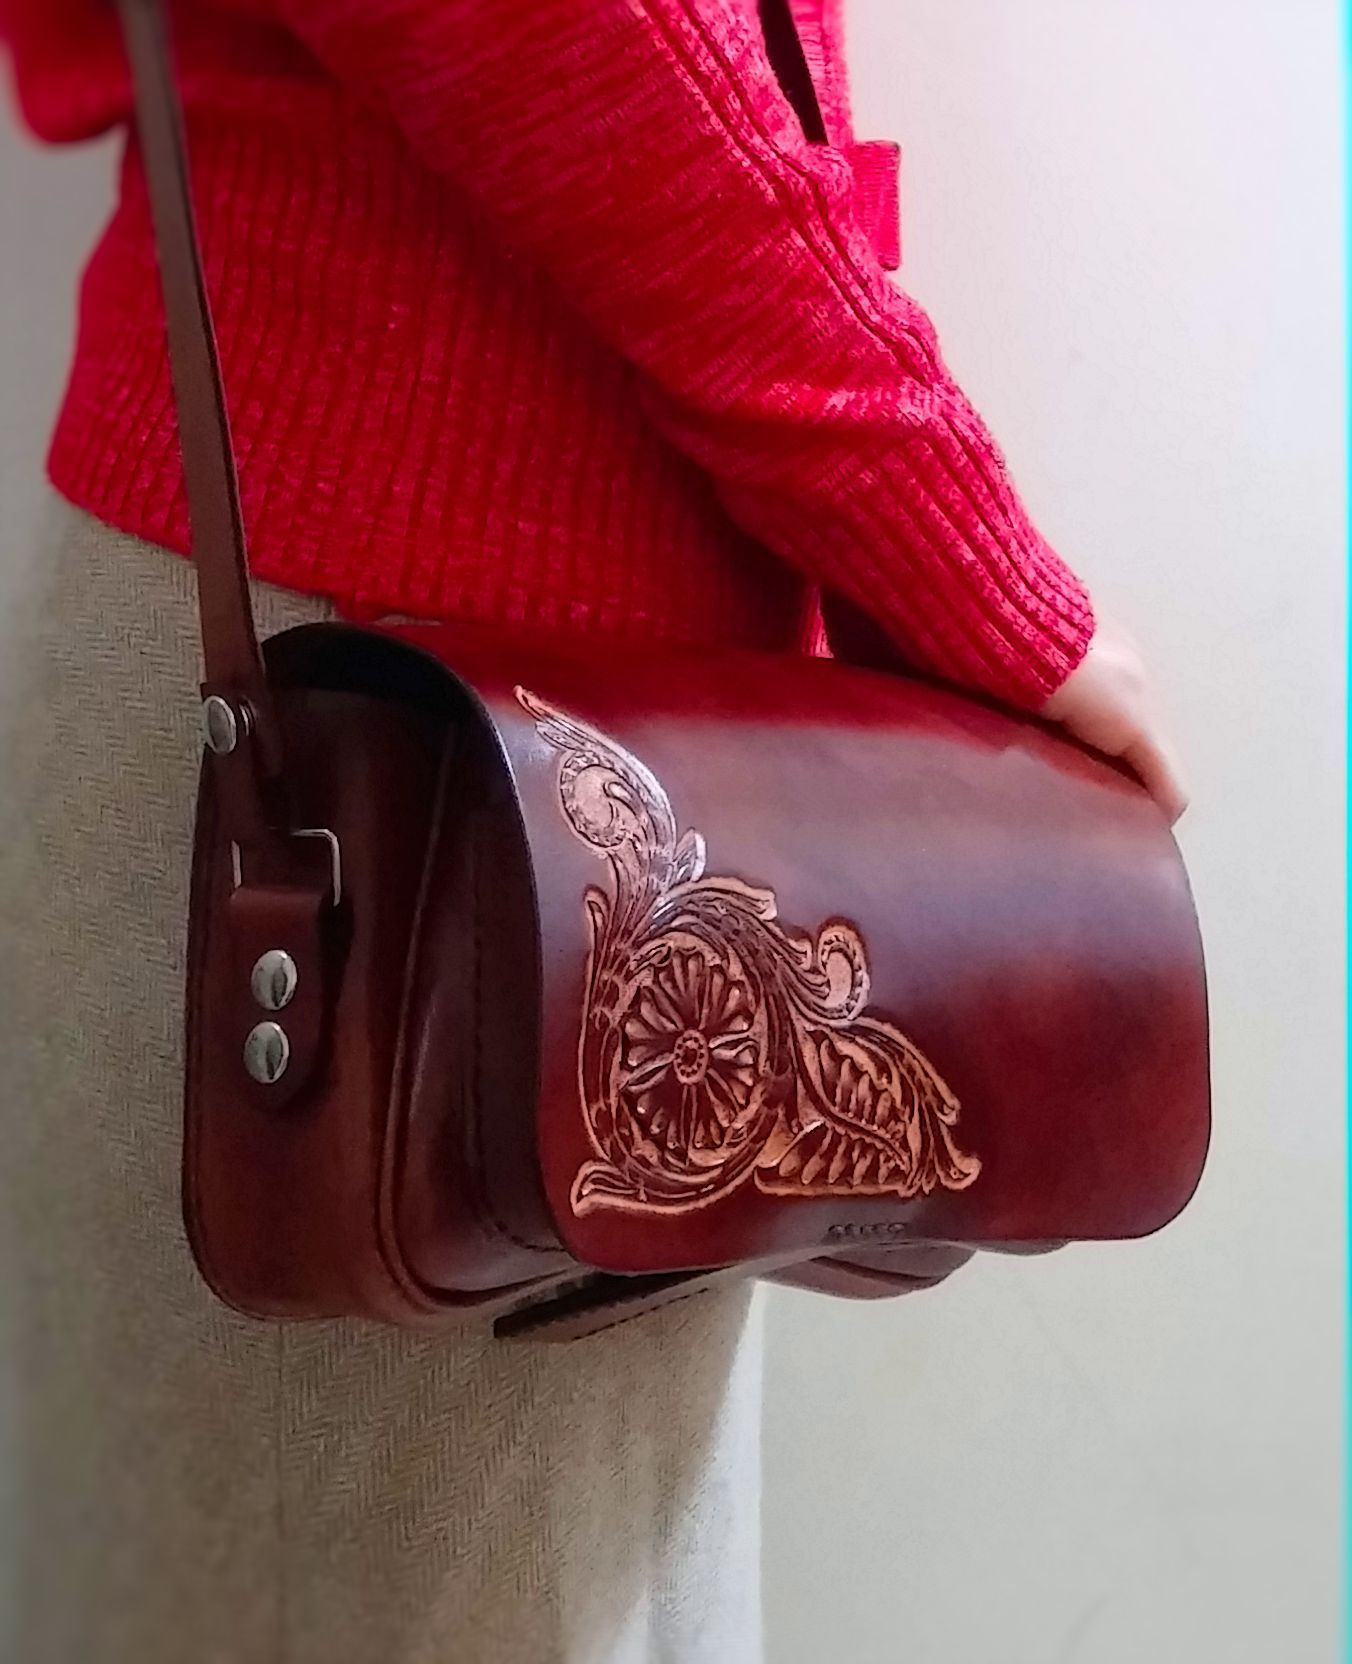 Handmade and tooled, ladies leather purse, by Fischer Workshops fischerworkshops.com